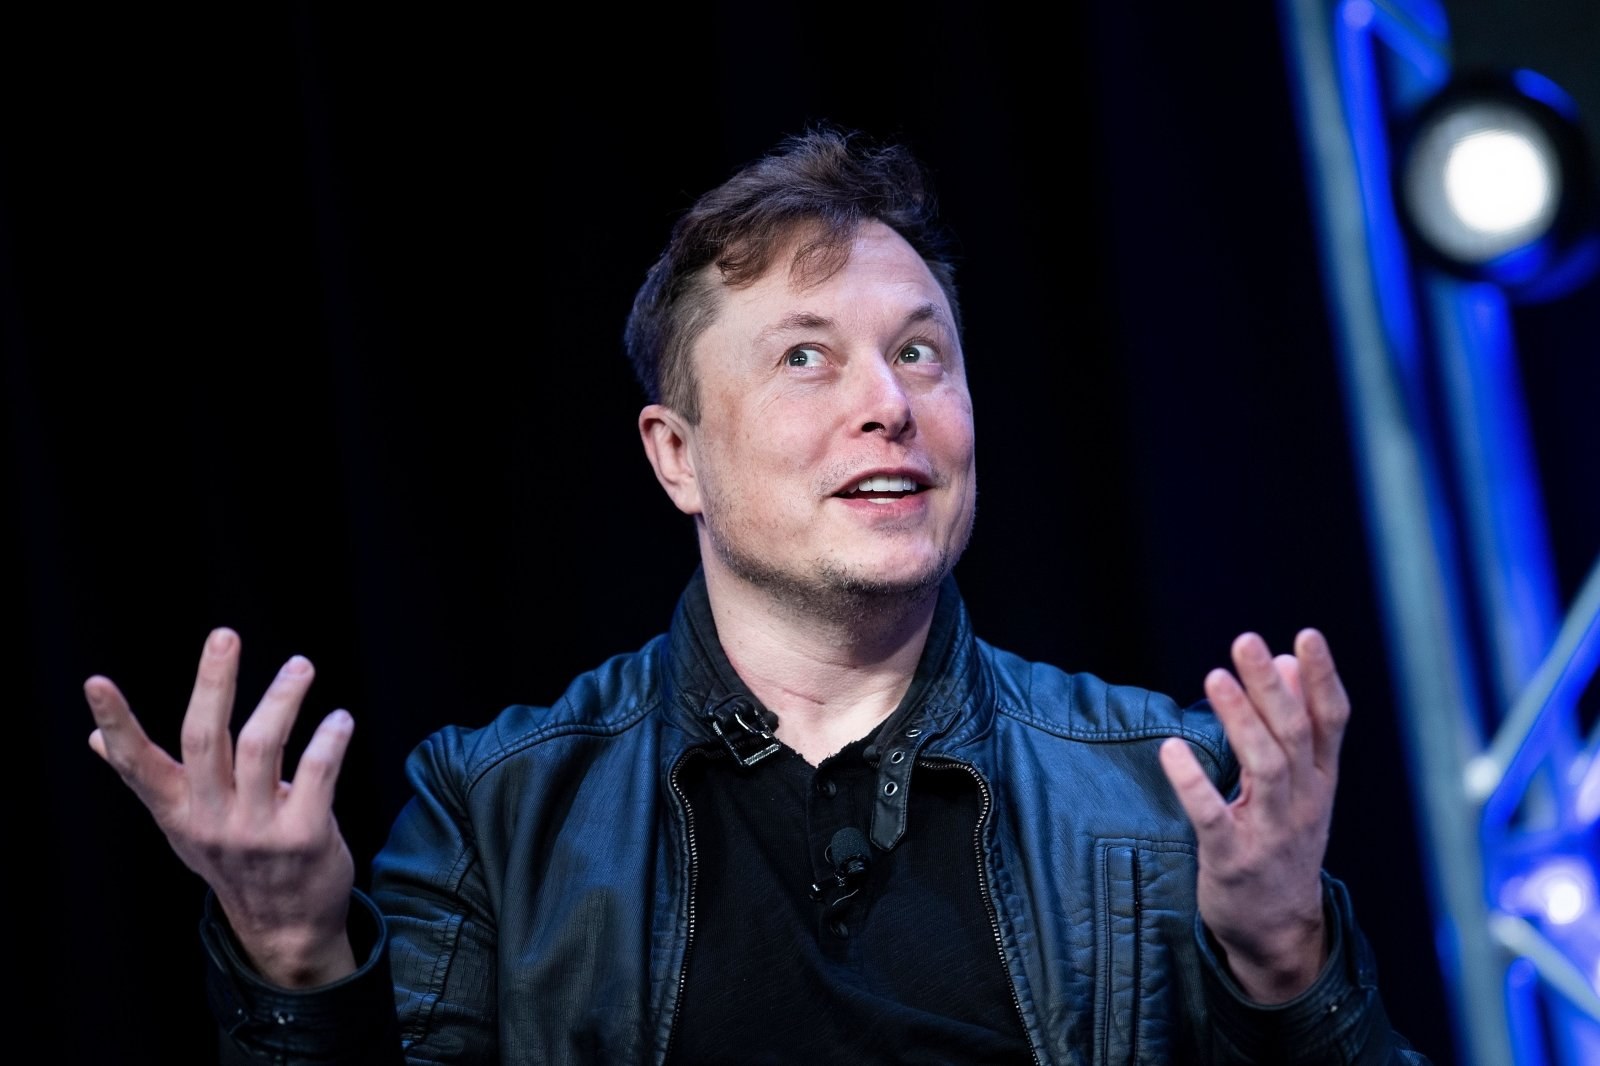 Elon Musk overtakes Bill Gates, becomes world's 2nd richest person